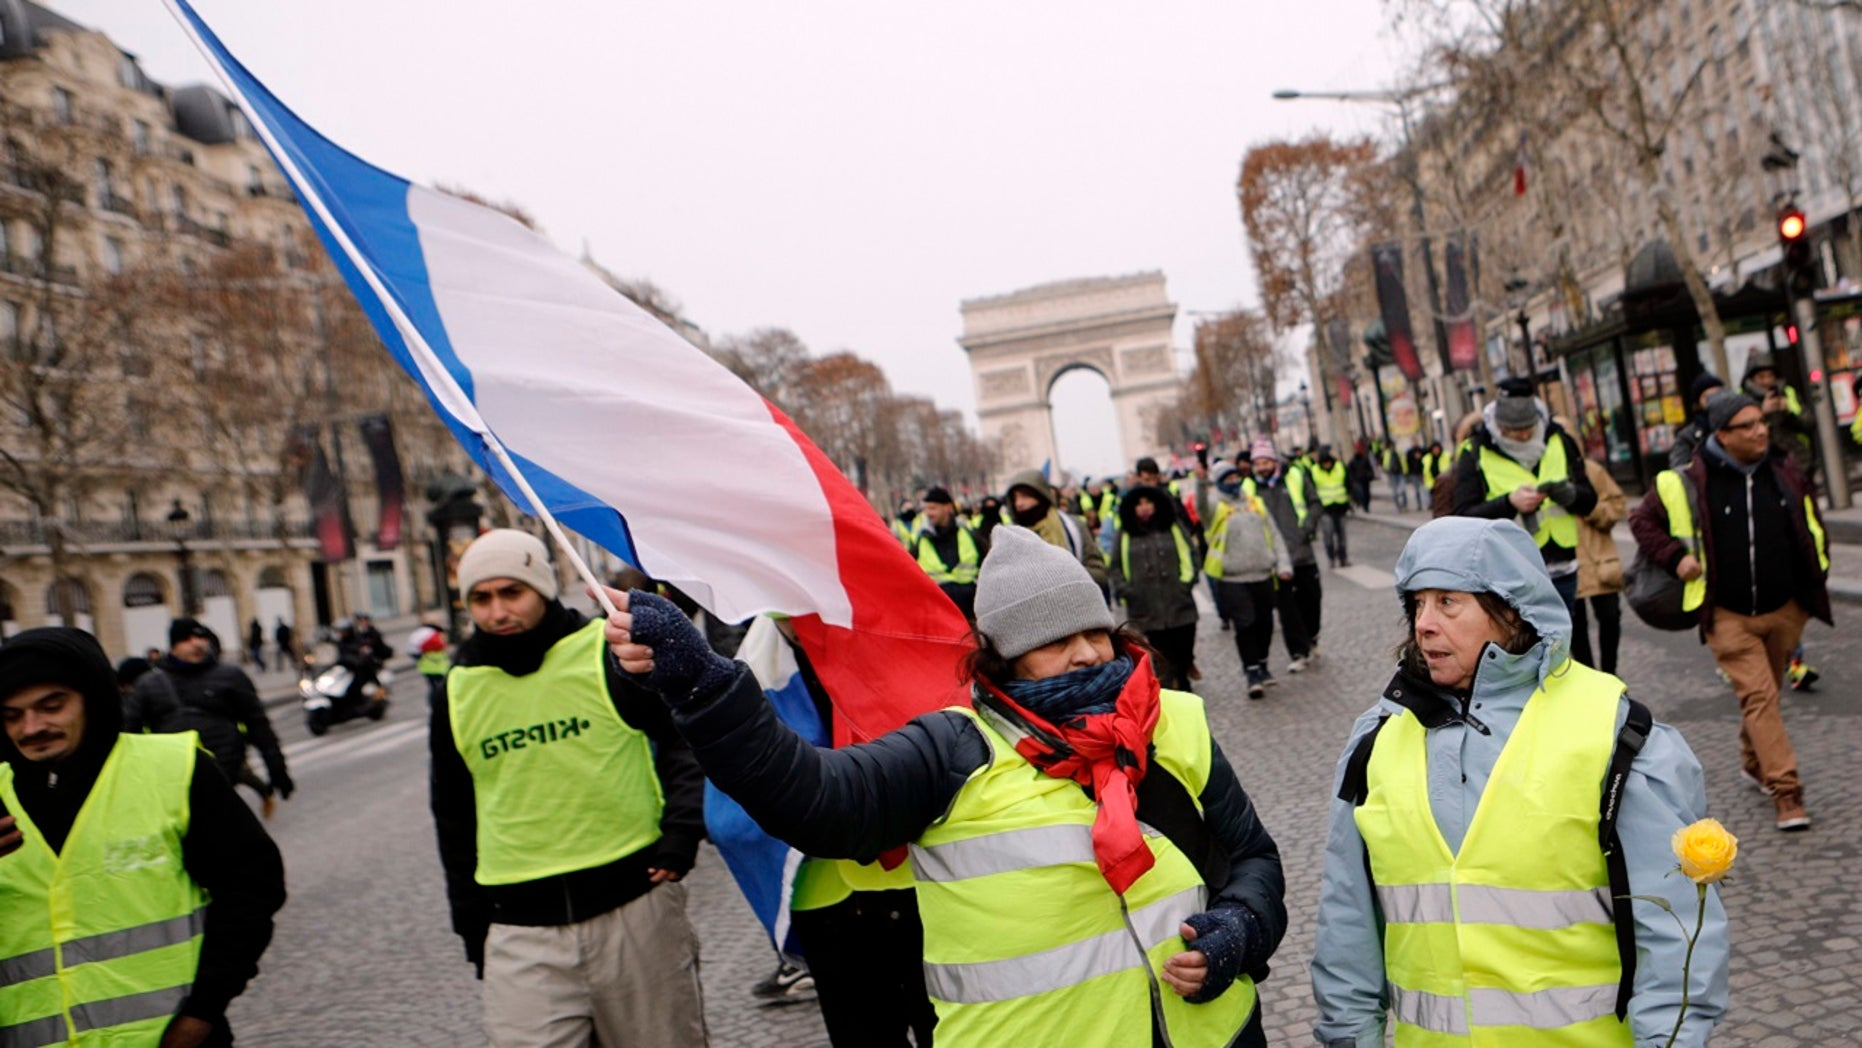 """Demonstrators wearing yellow vests walk down the Champs-Elysees avenue, Saturday, Dec. 15, 2018 in Paris. A strong police presence has deployed in Paris before planned demonstrations by the """"yellow vest"""" protesters, with authorities repeating calls for calm after previous violent protests and rioting."""